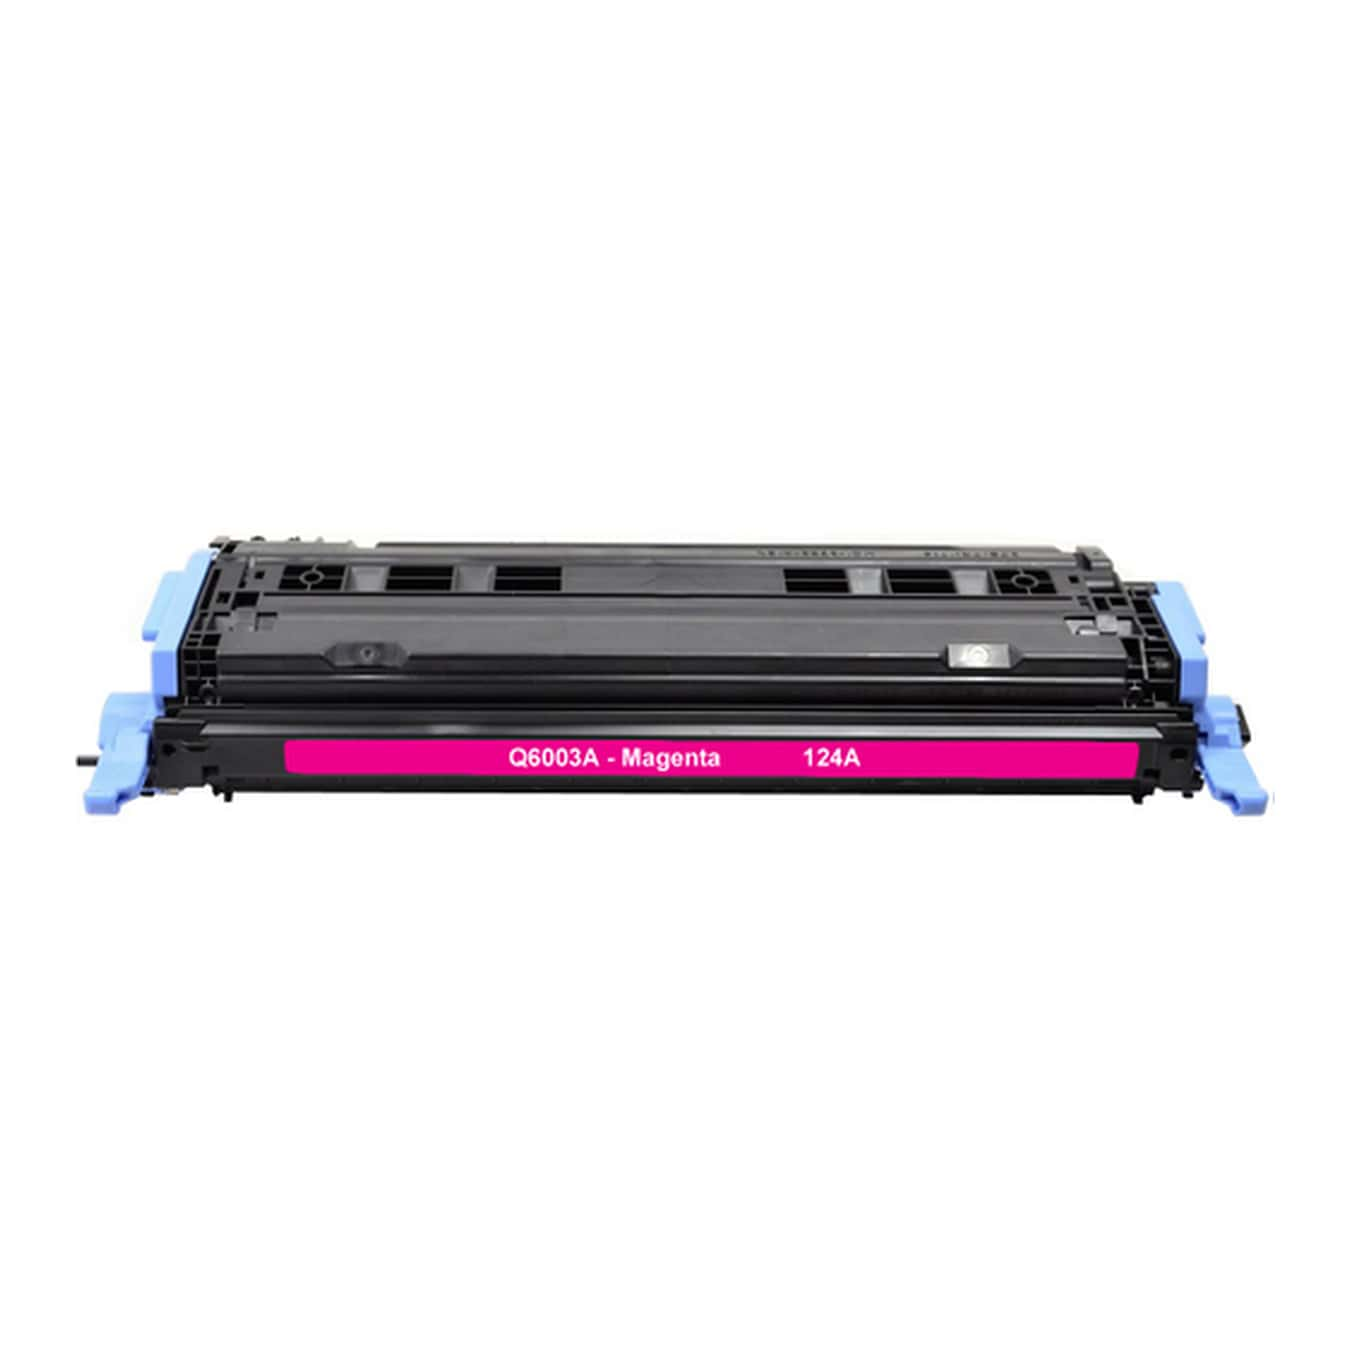 Q6003A Toner Cartridge - HP Remanufactured (Magenta)